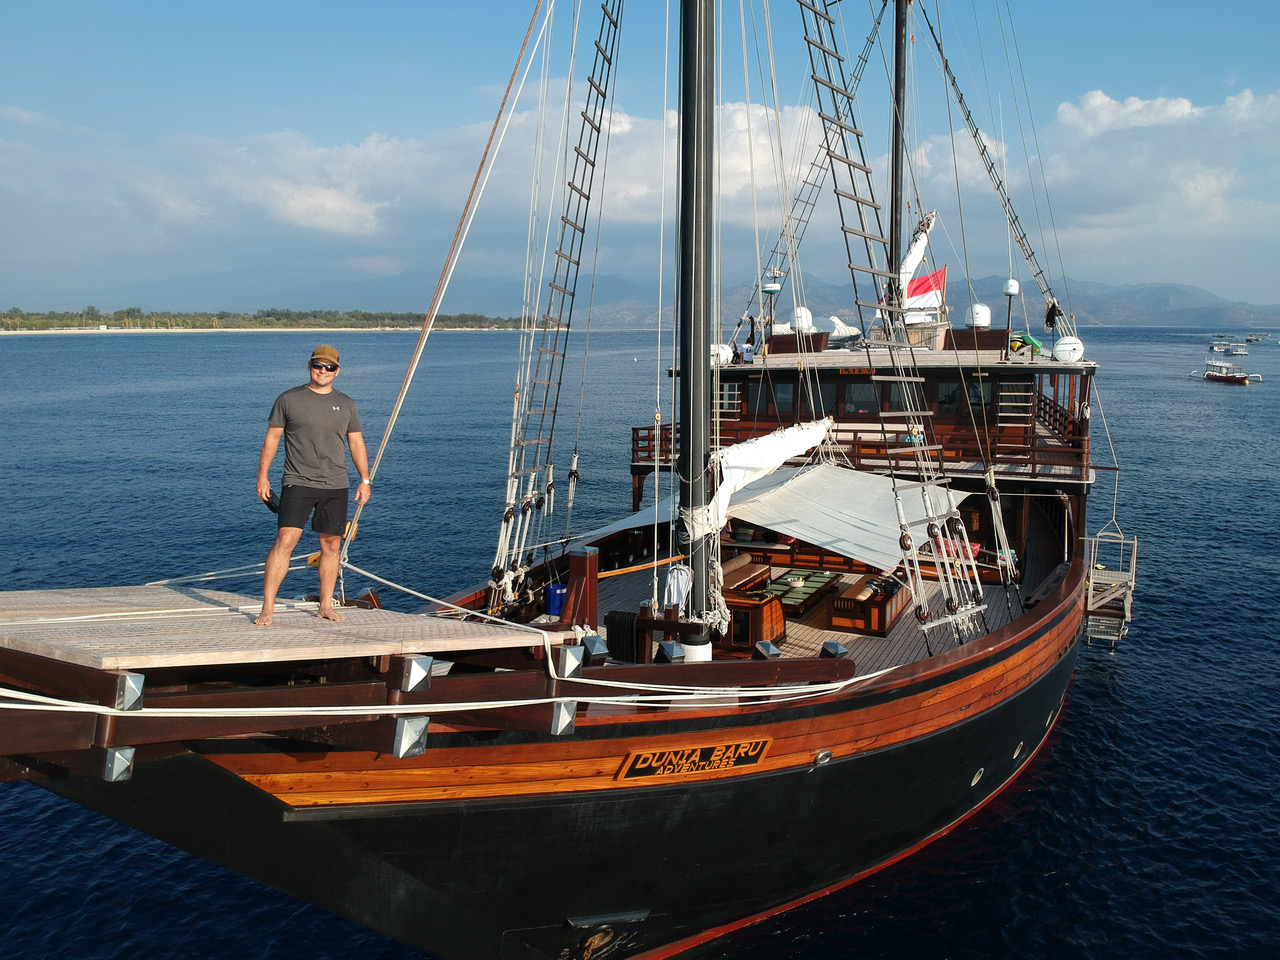 man smiling on bow of luxury wooden yacht Dunia Baru in Indonesia